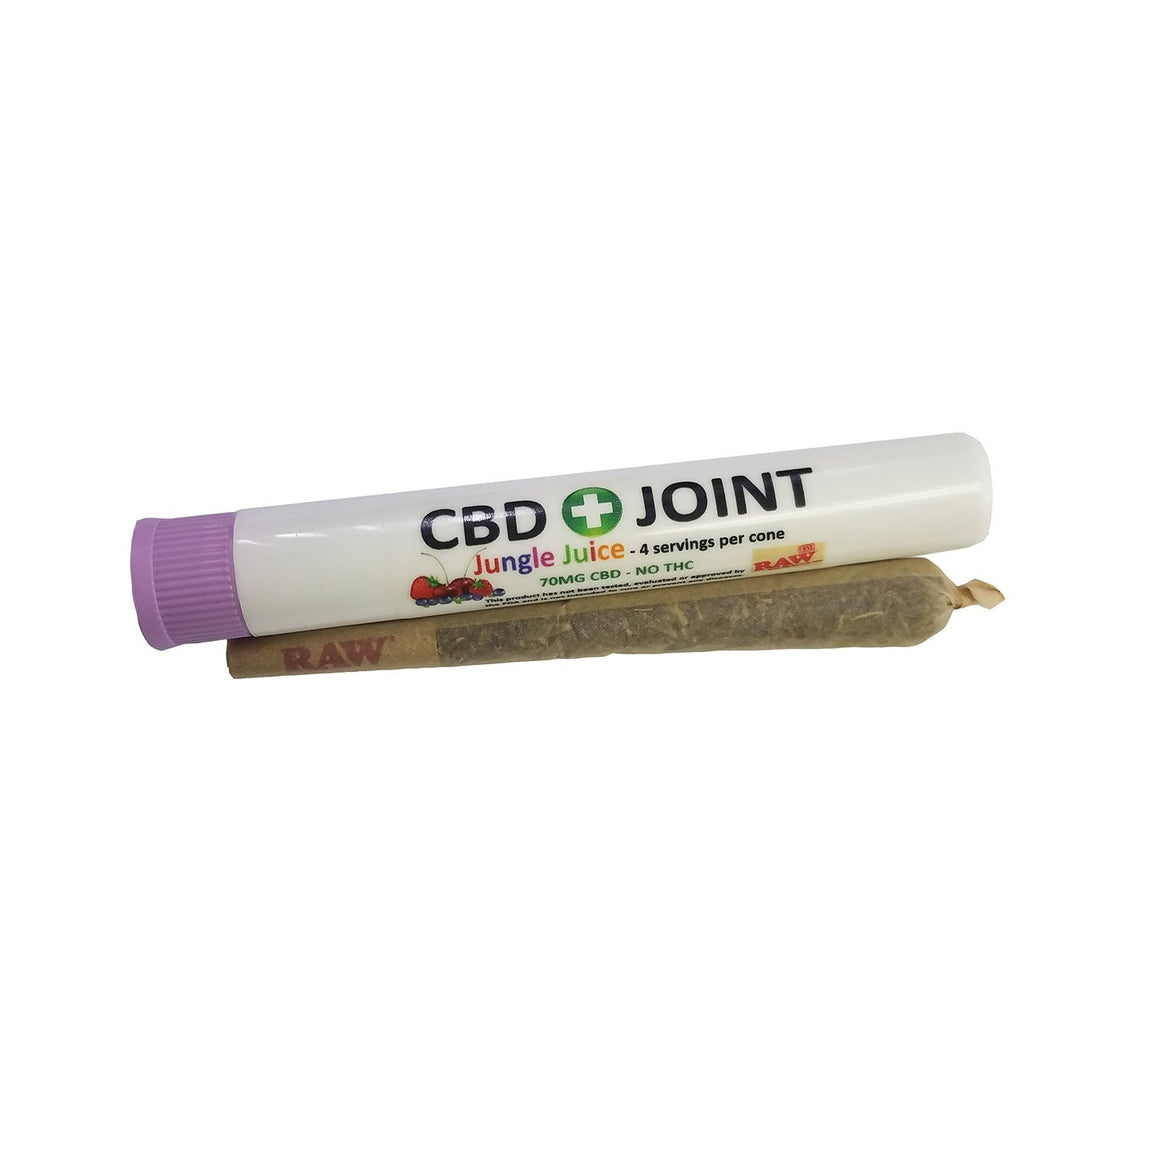 CBD Joint Jungle Juice - 150 MG/Joint